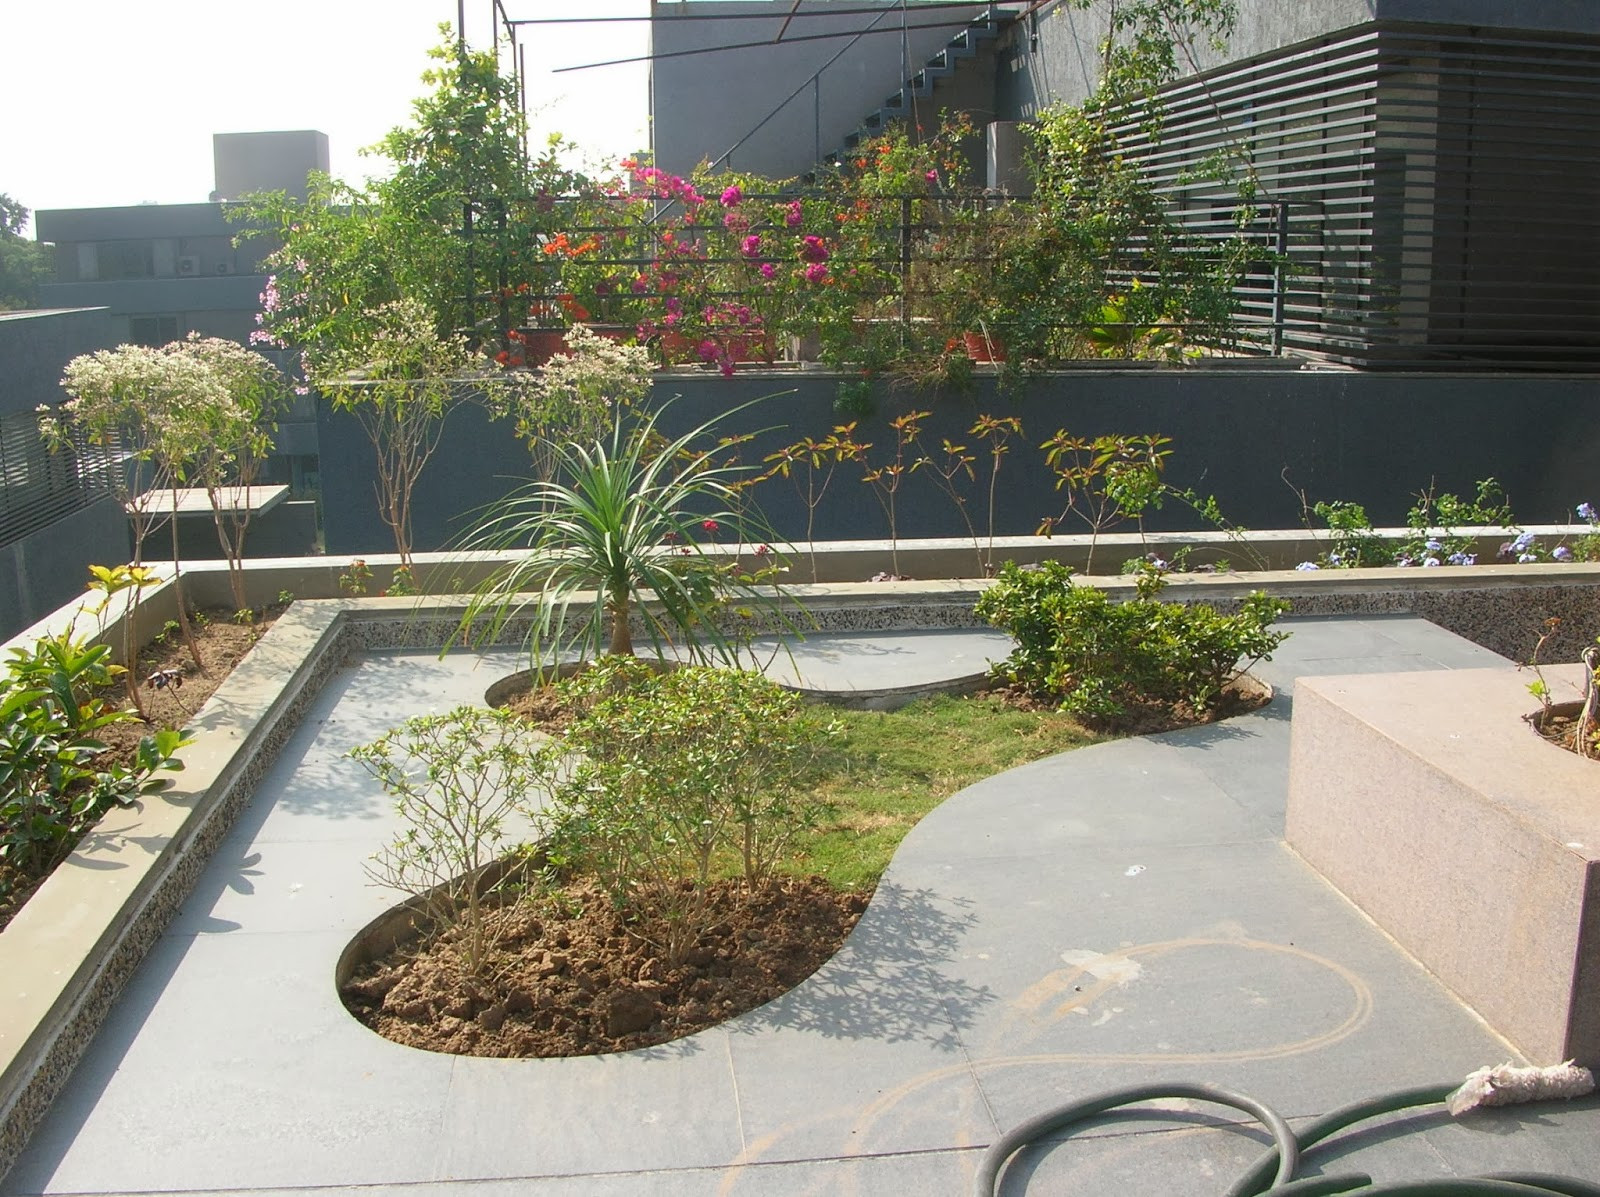 Terrace Landscape Plants  Bonsai Trees and Plants in Ahmedabad for Sale garden